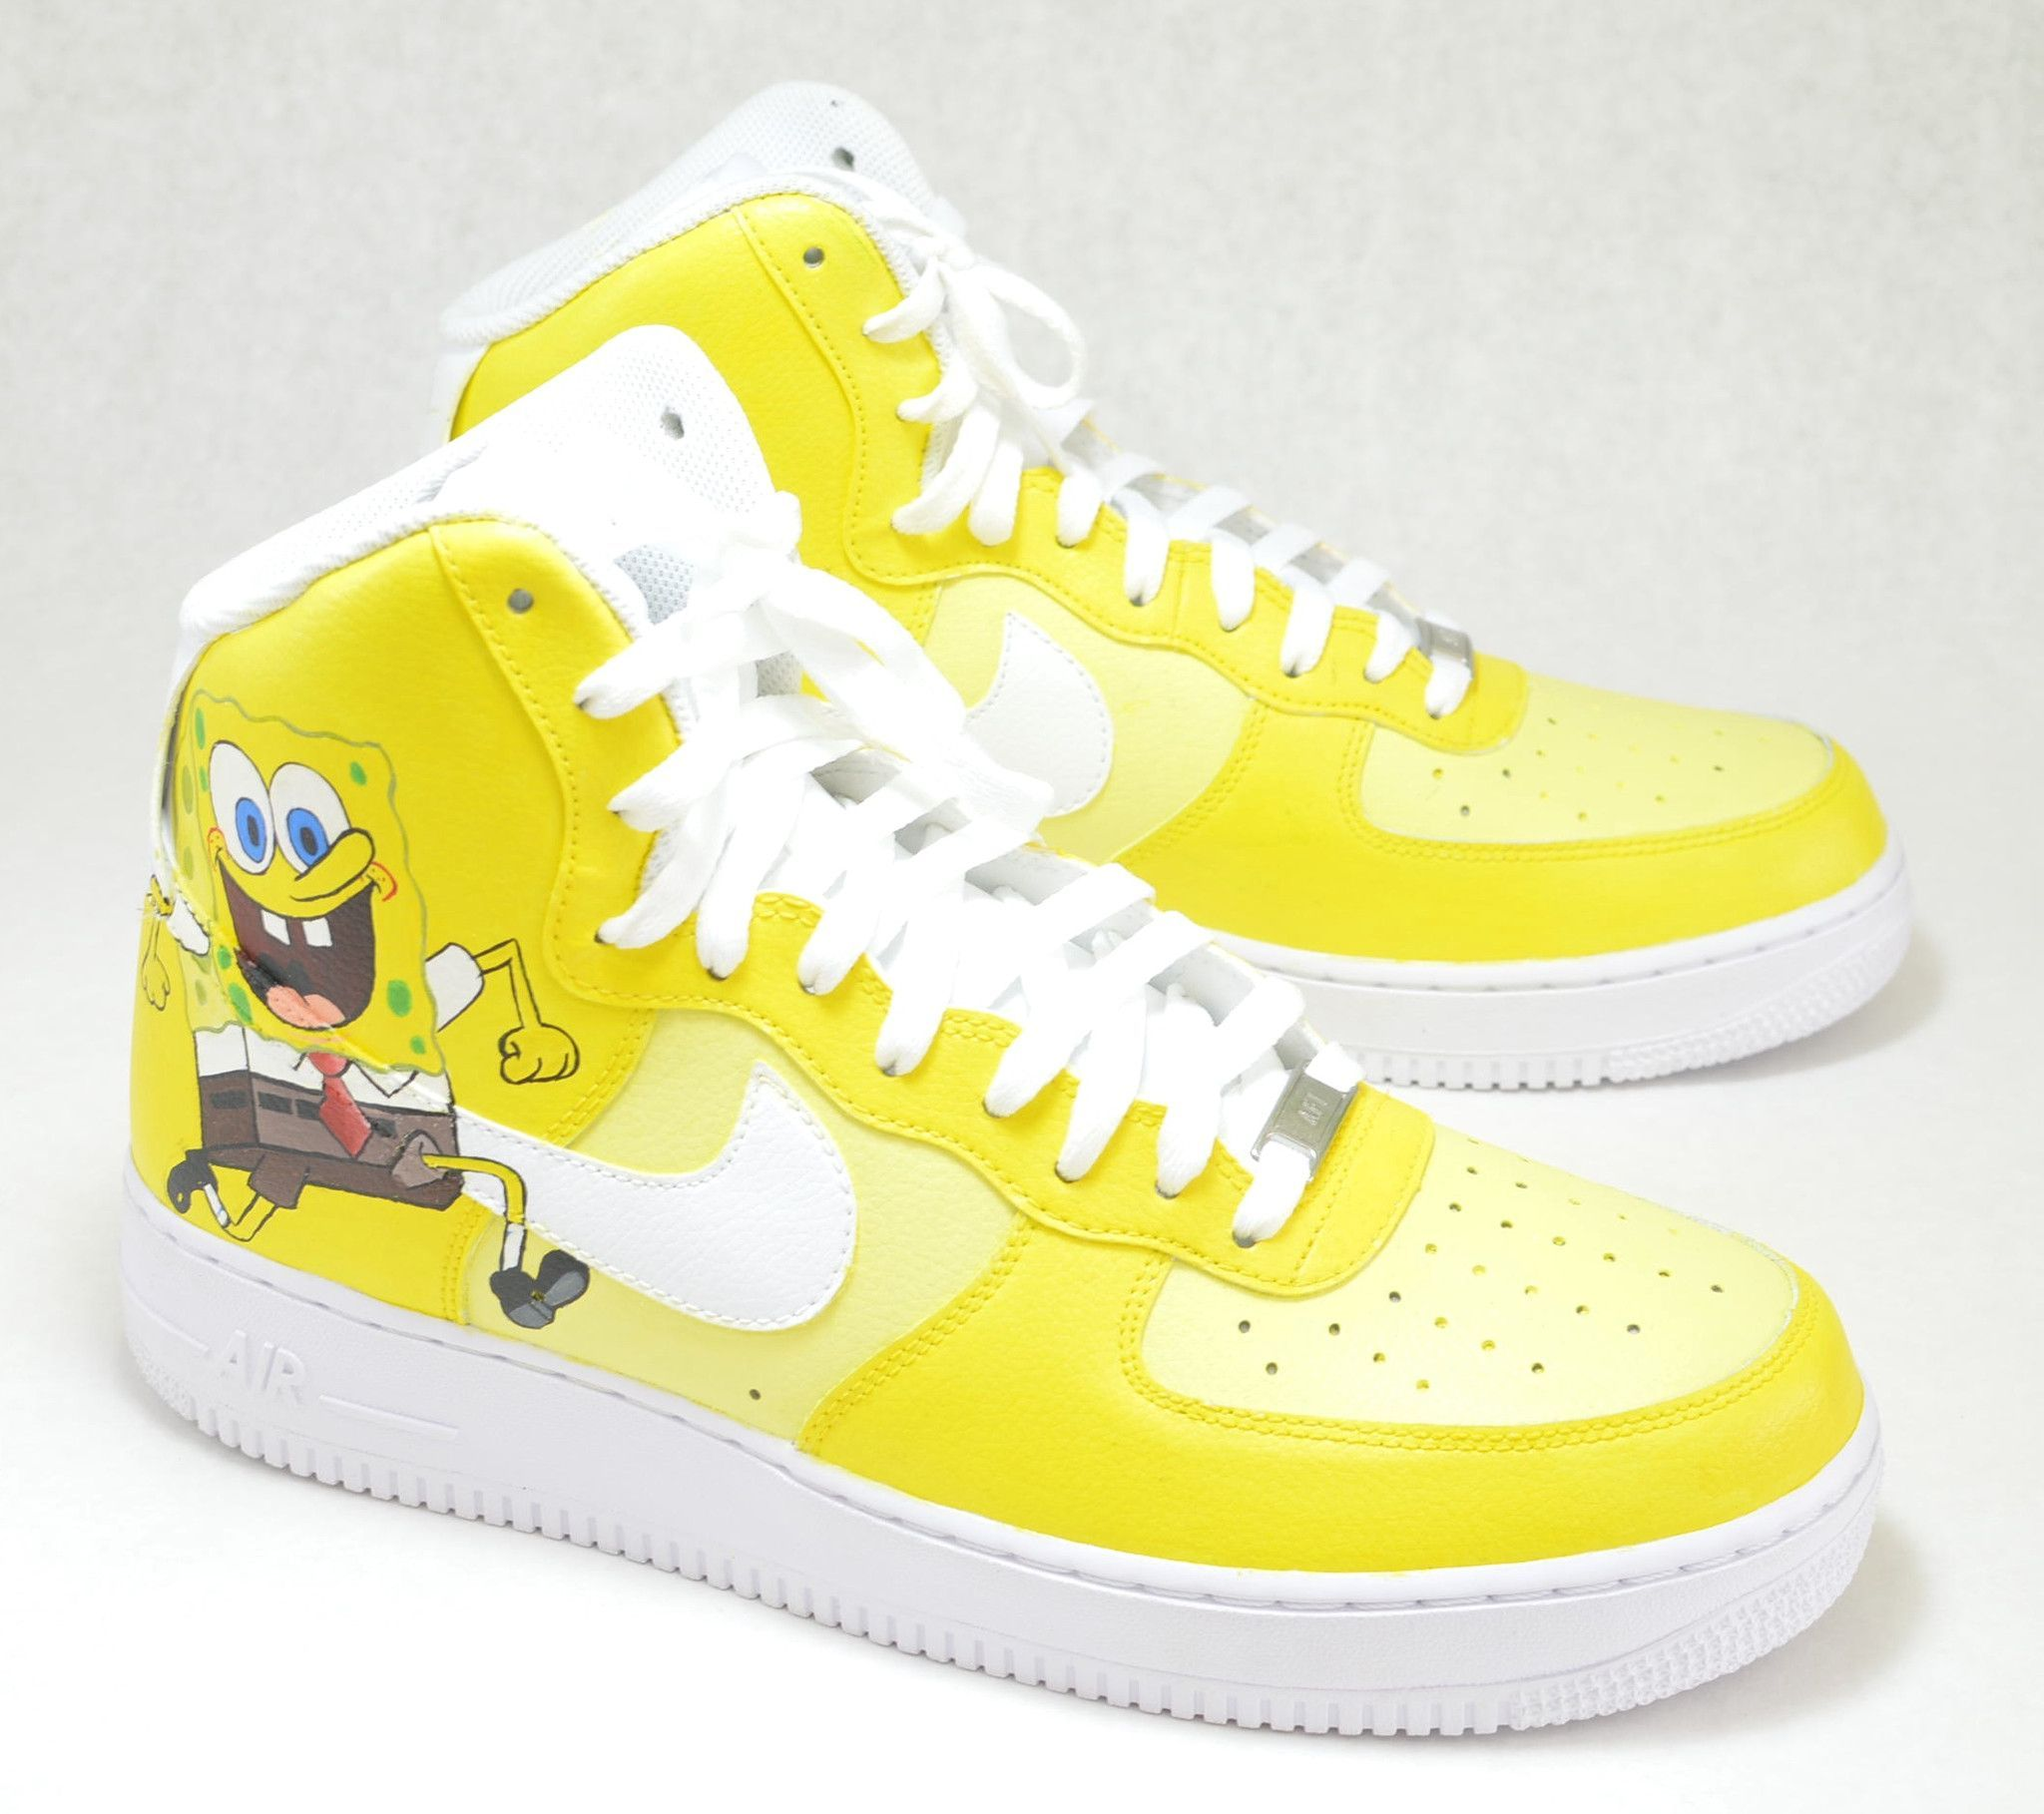 san francisco ef62b e6b12 These one-of-a-kind hand-painted Nike Air Force Ones are